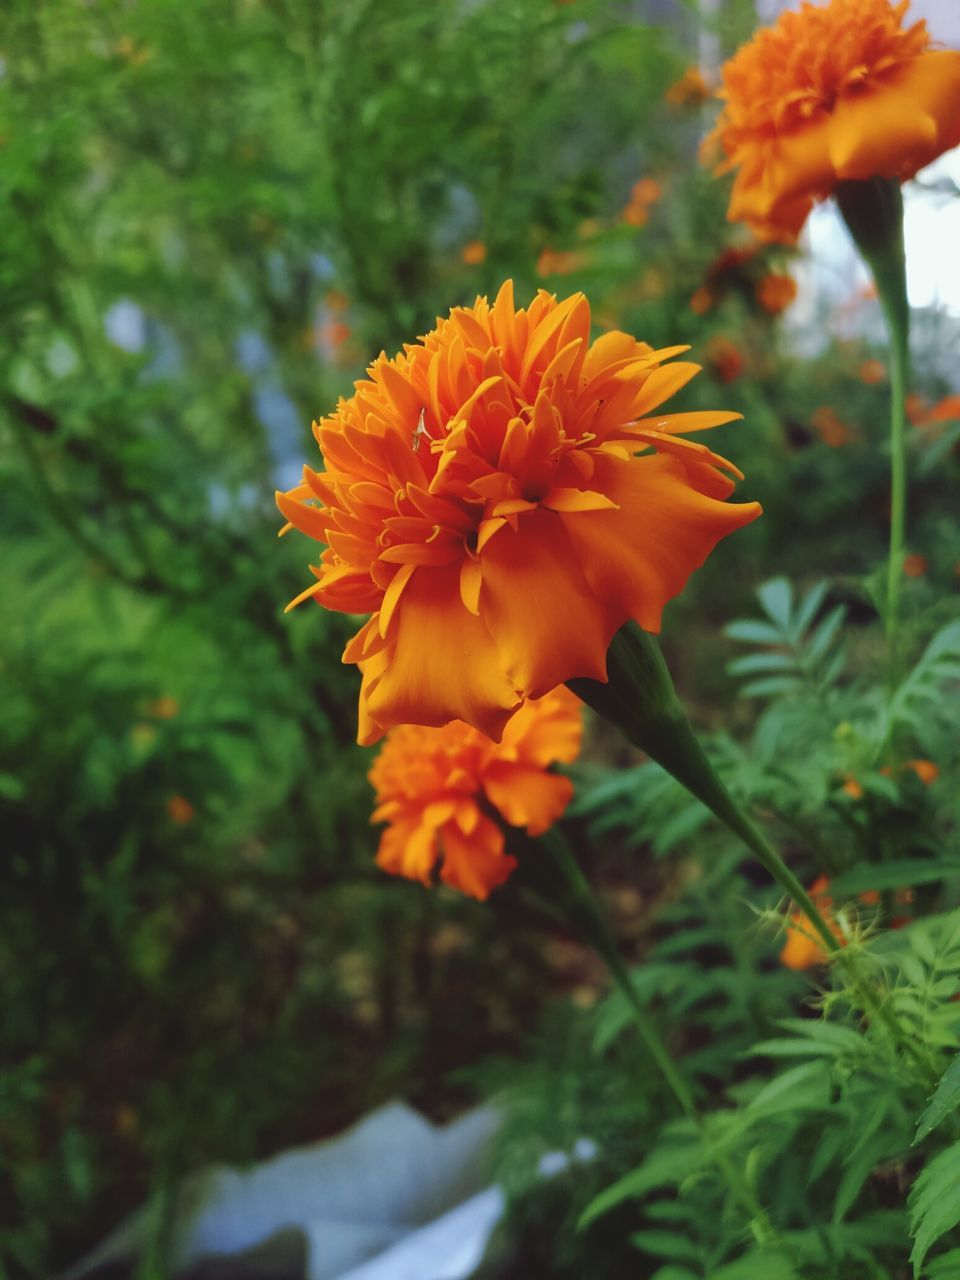 flower, beauty in nature, nature, growth, petal, orange color, plant, fragility, no people, freshness, focus on foreground, blooming, flower head, outdoors, close-up, day, marigold